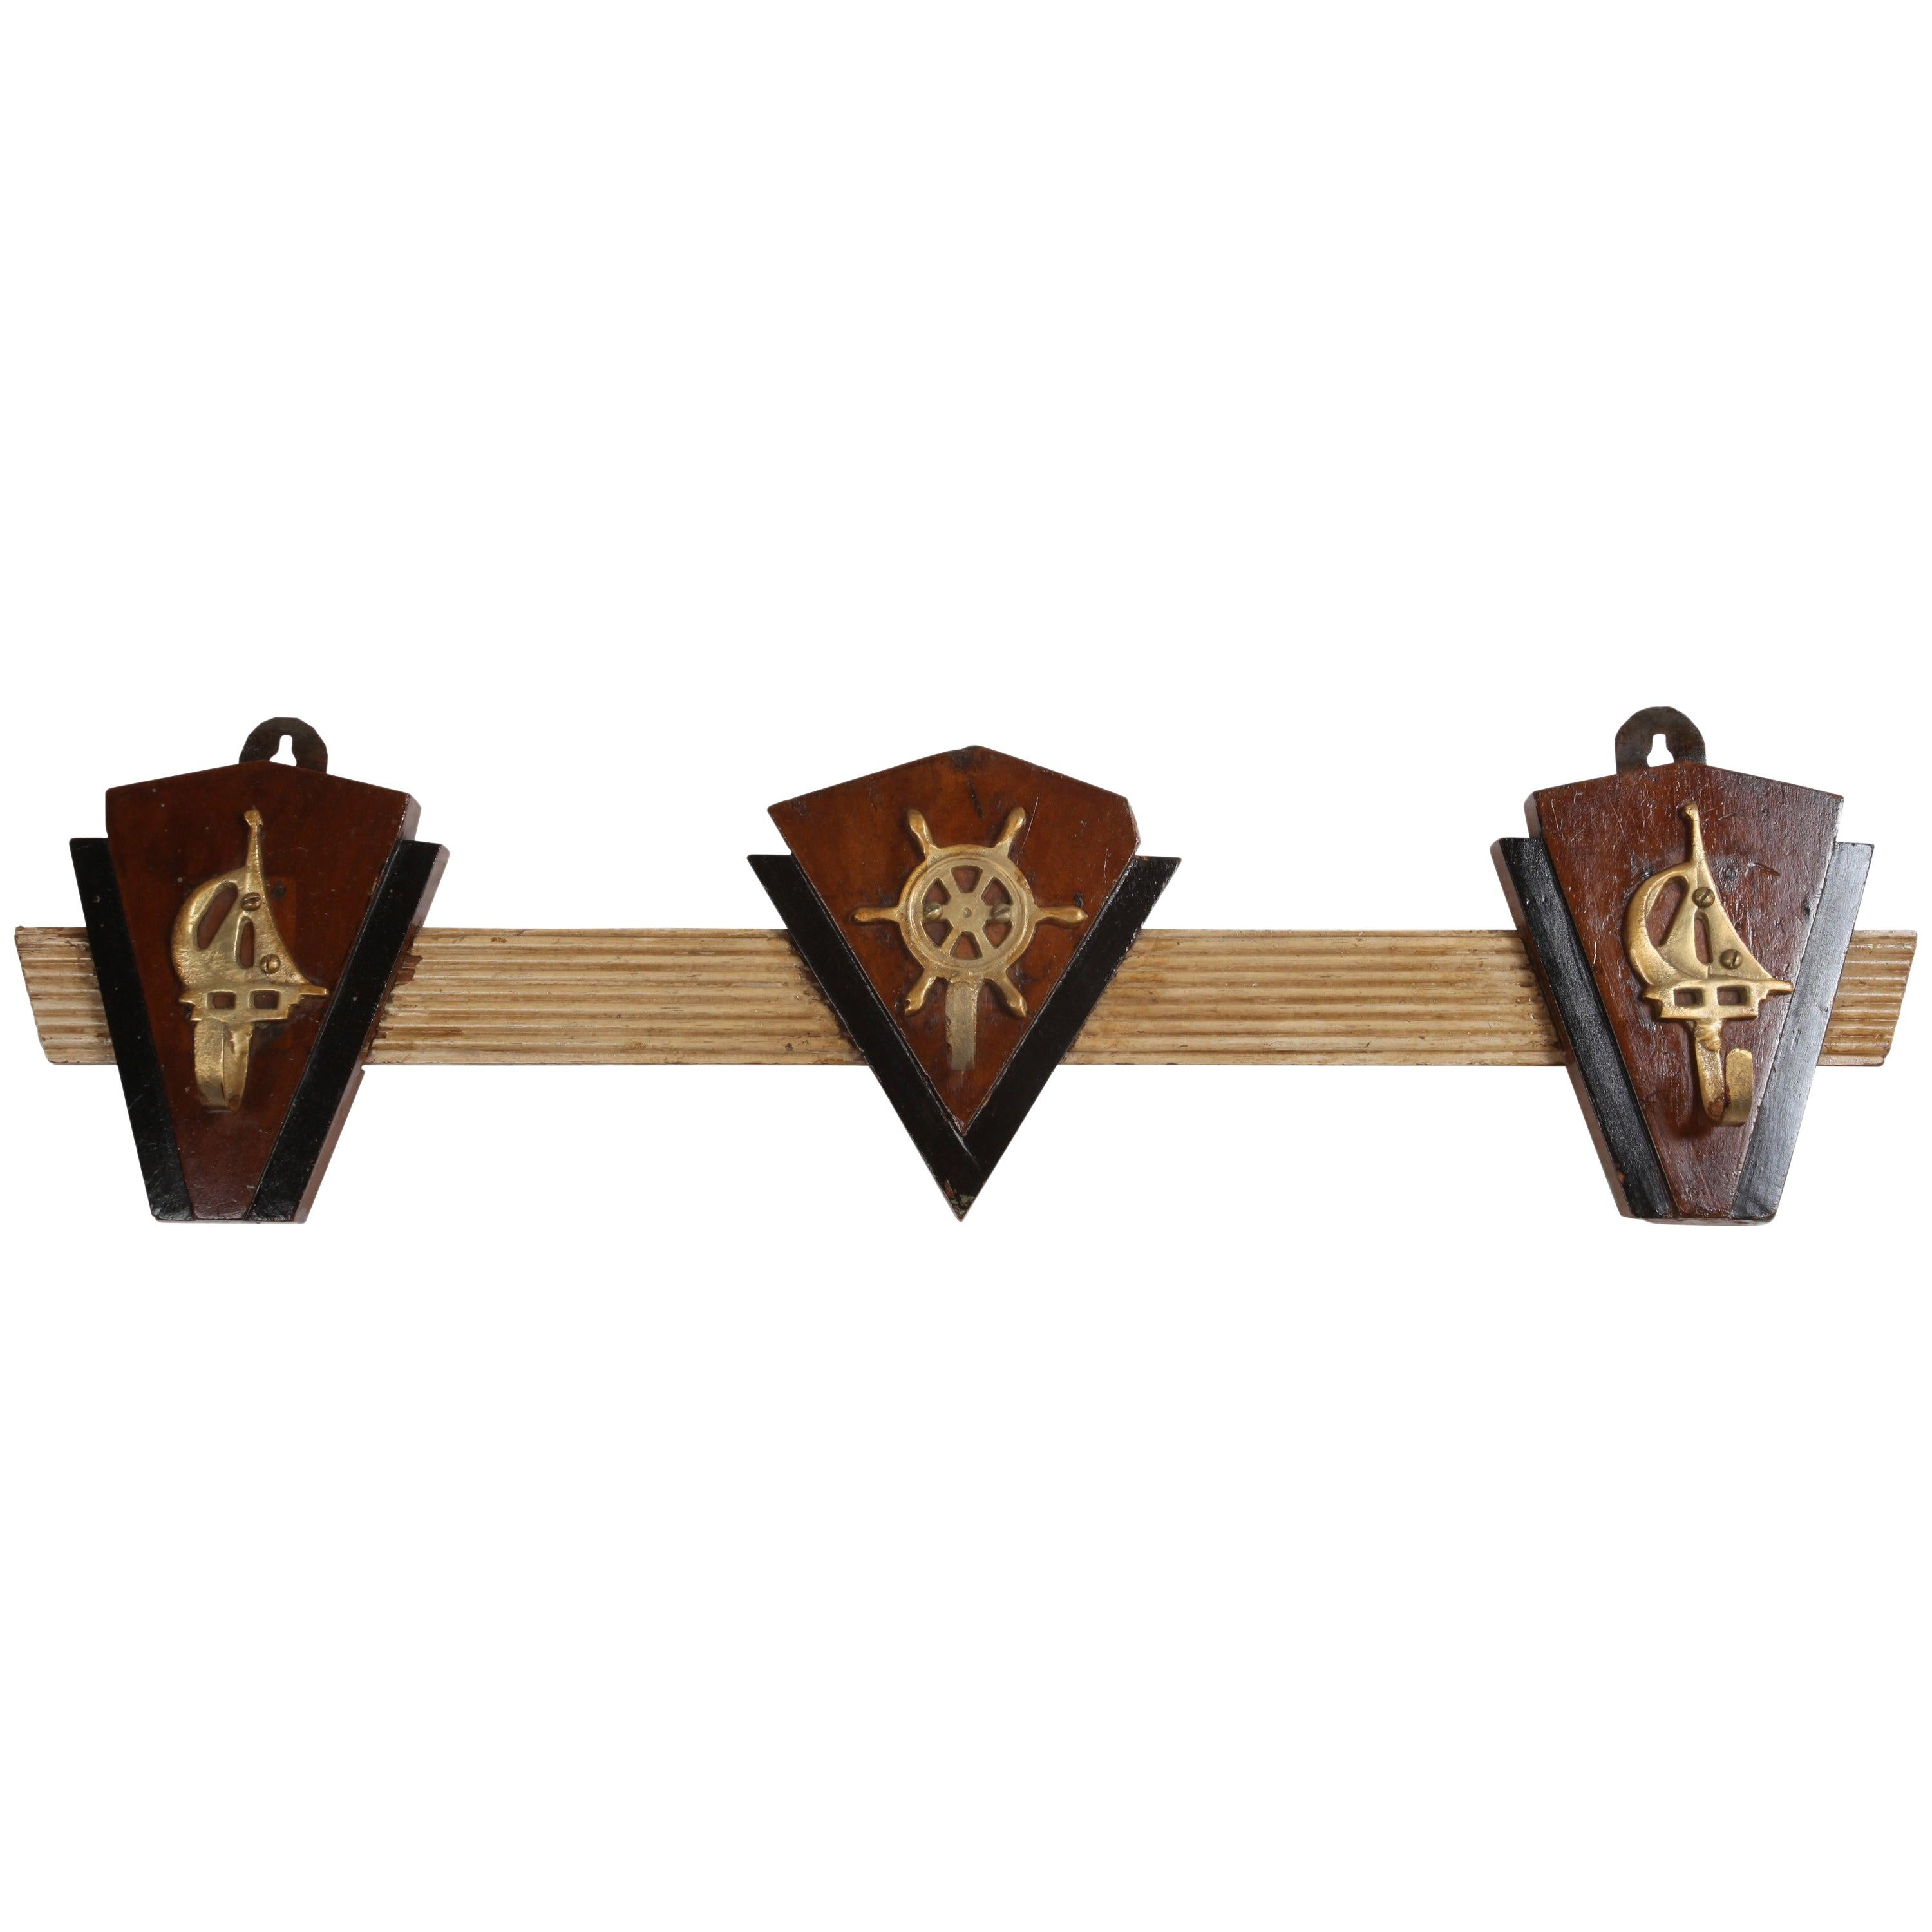 Nautical Teak and Brass Coat Hooks from a 1970s Cruise Ship